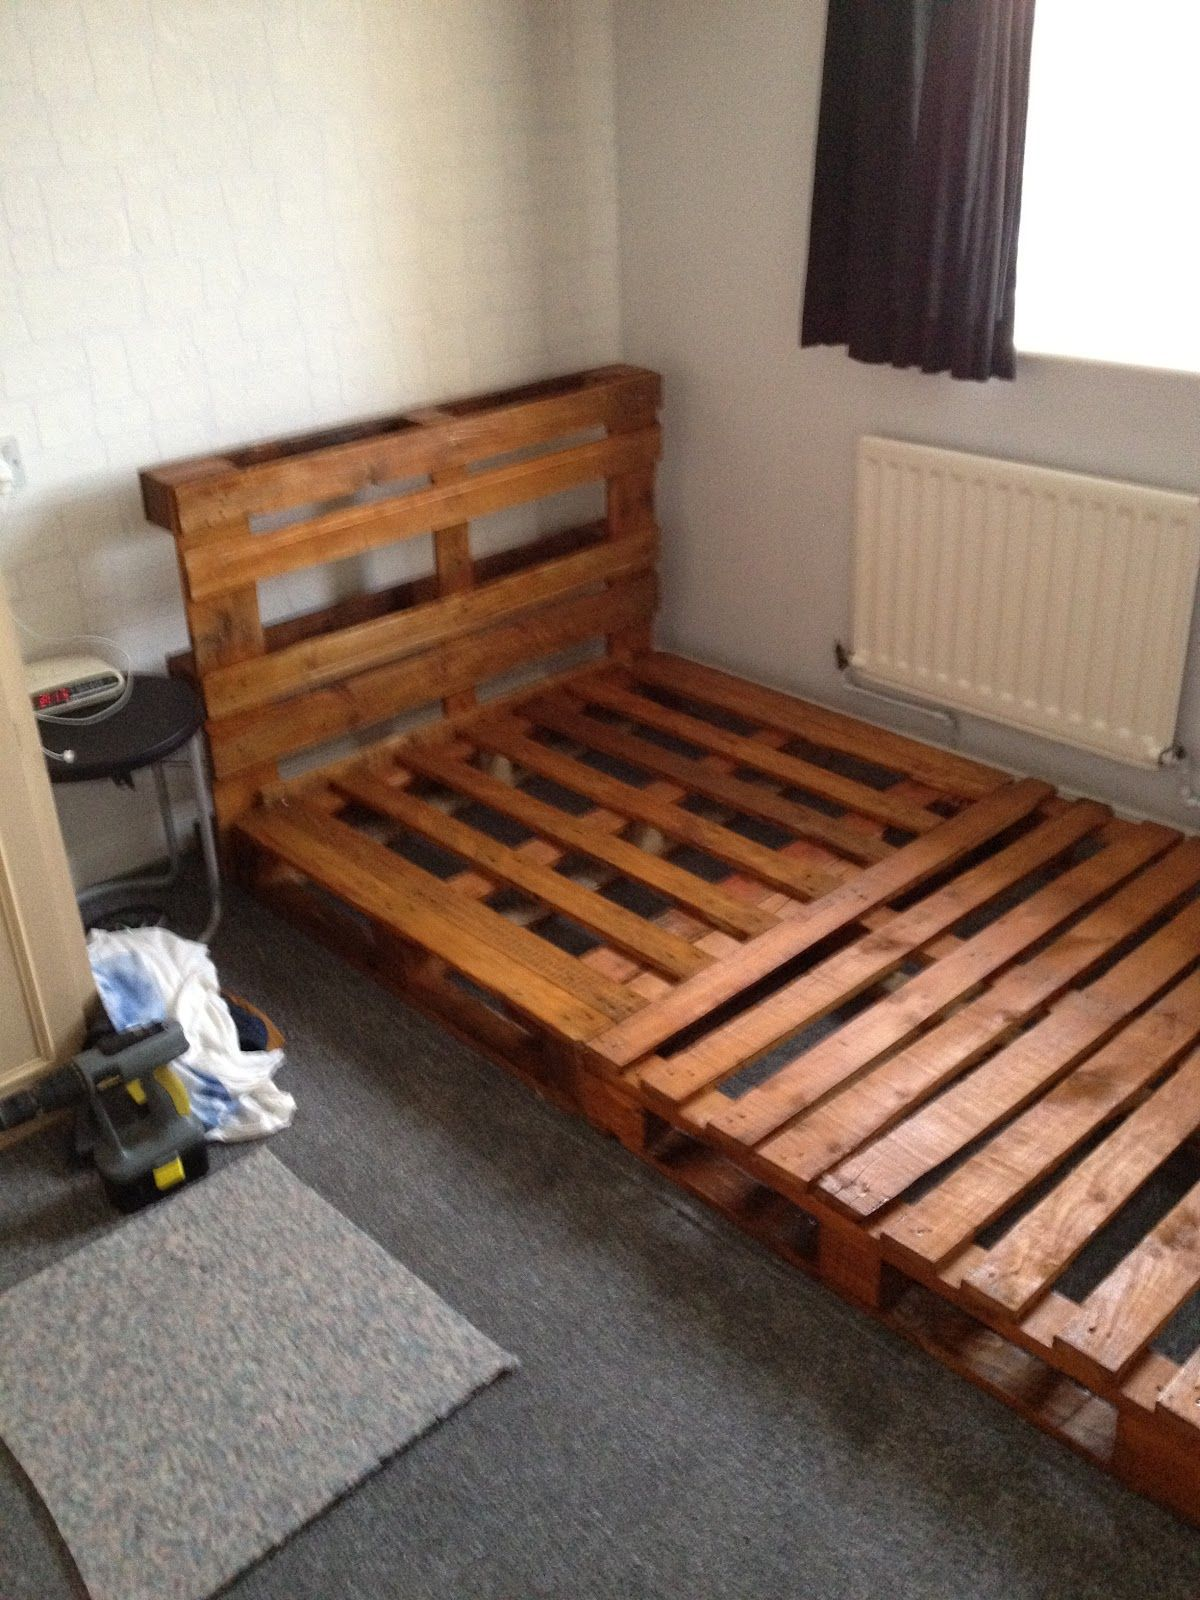 DIY day bed out of pallets Step 6. Add accessories and